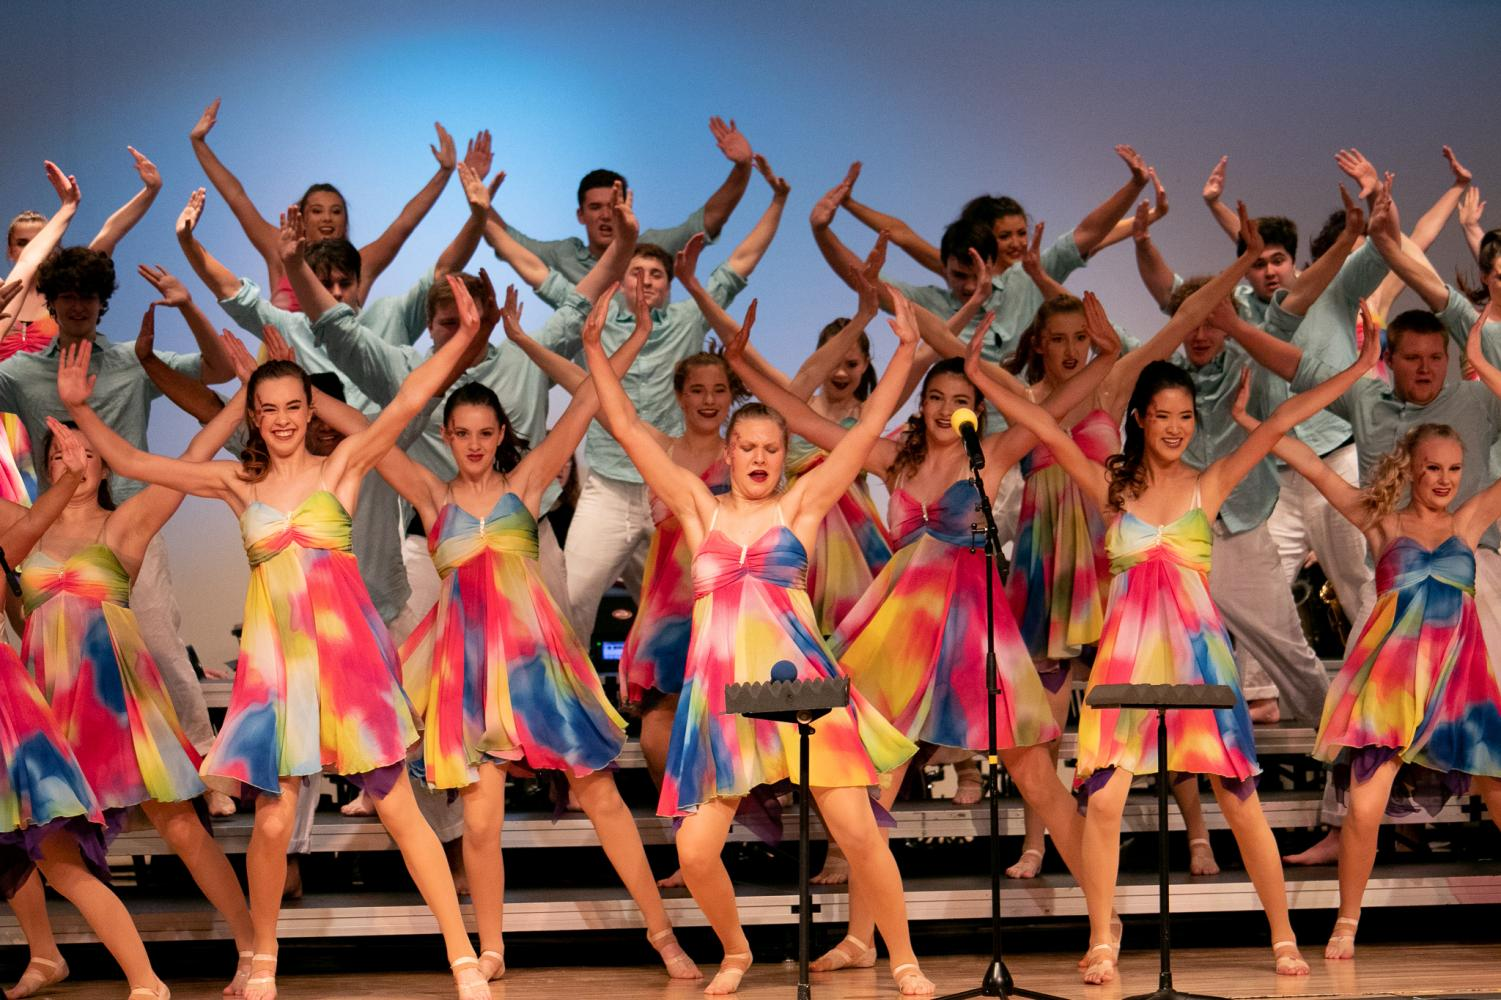 Excel dancing passionately after their costume change to light and flowy attire.